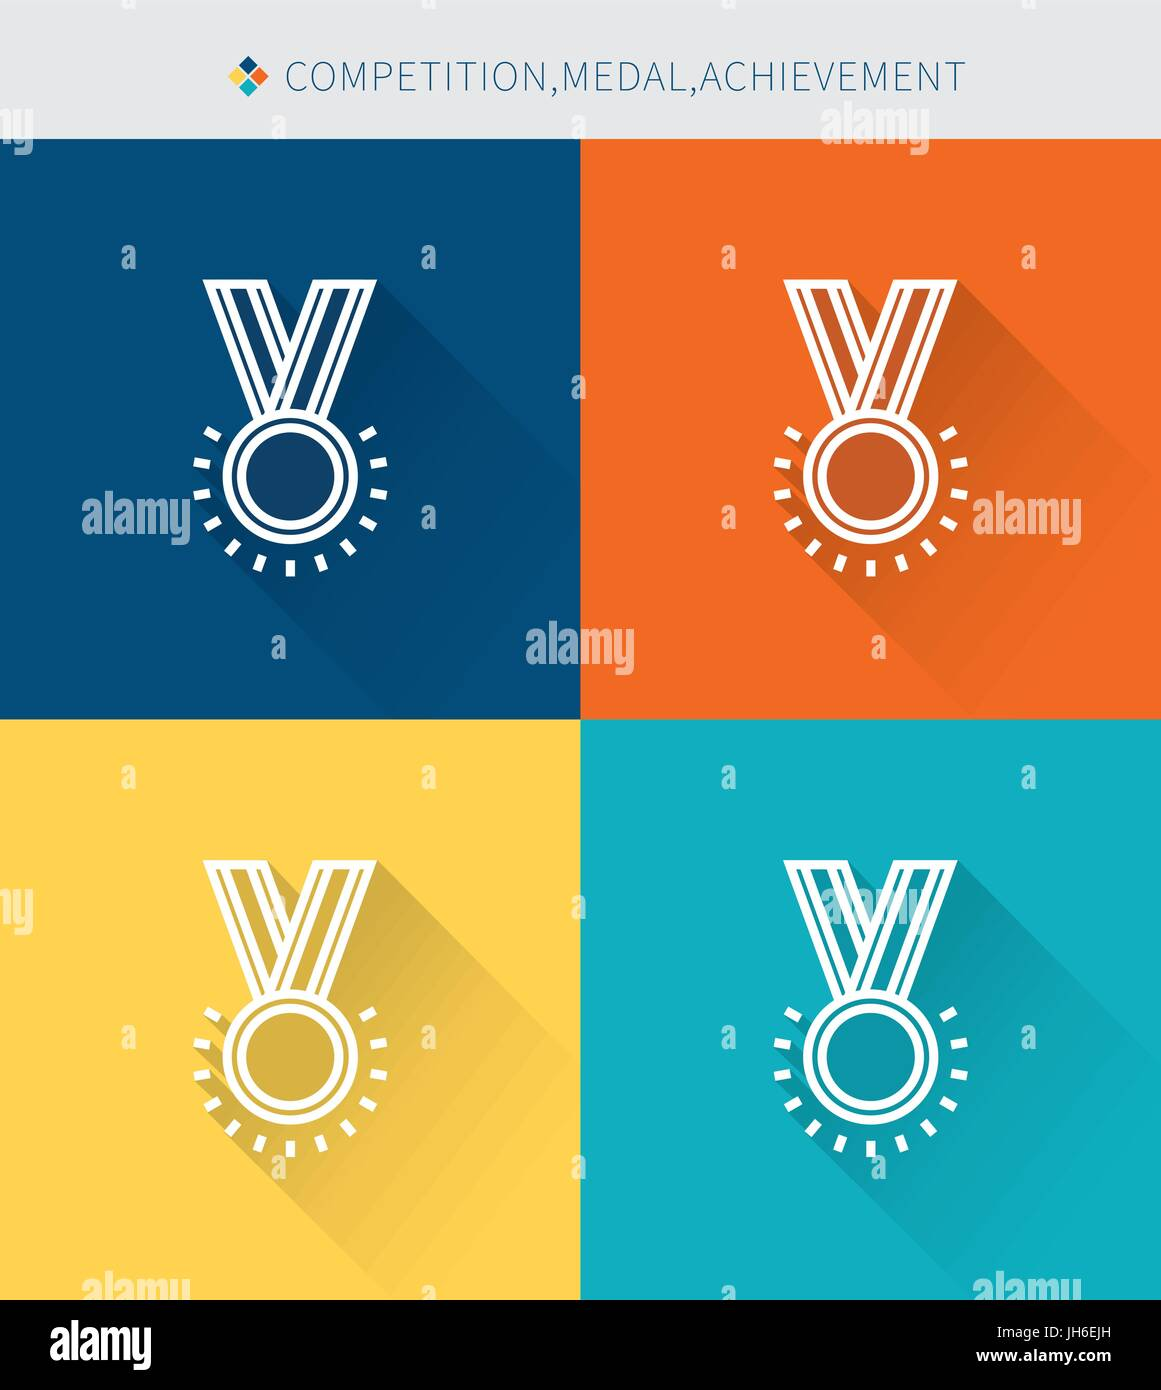 Thin thin line icons set of competition & medal and achievement , modern simple style - Stock Image